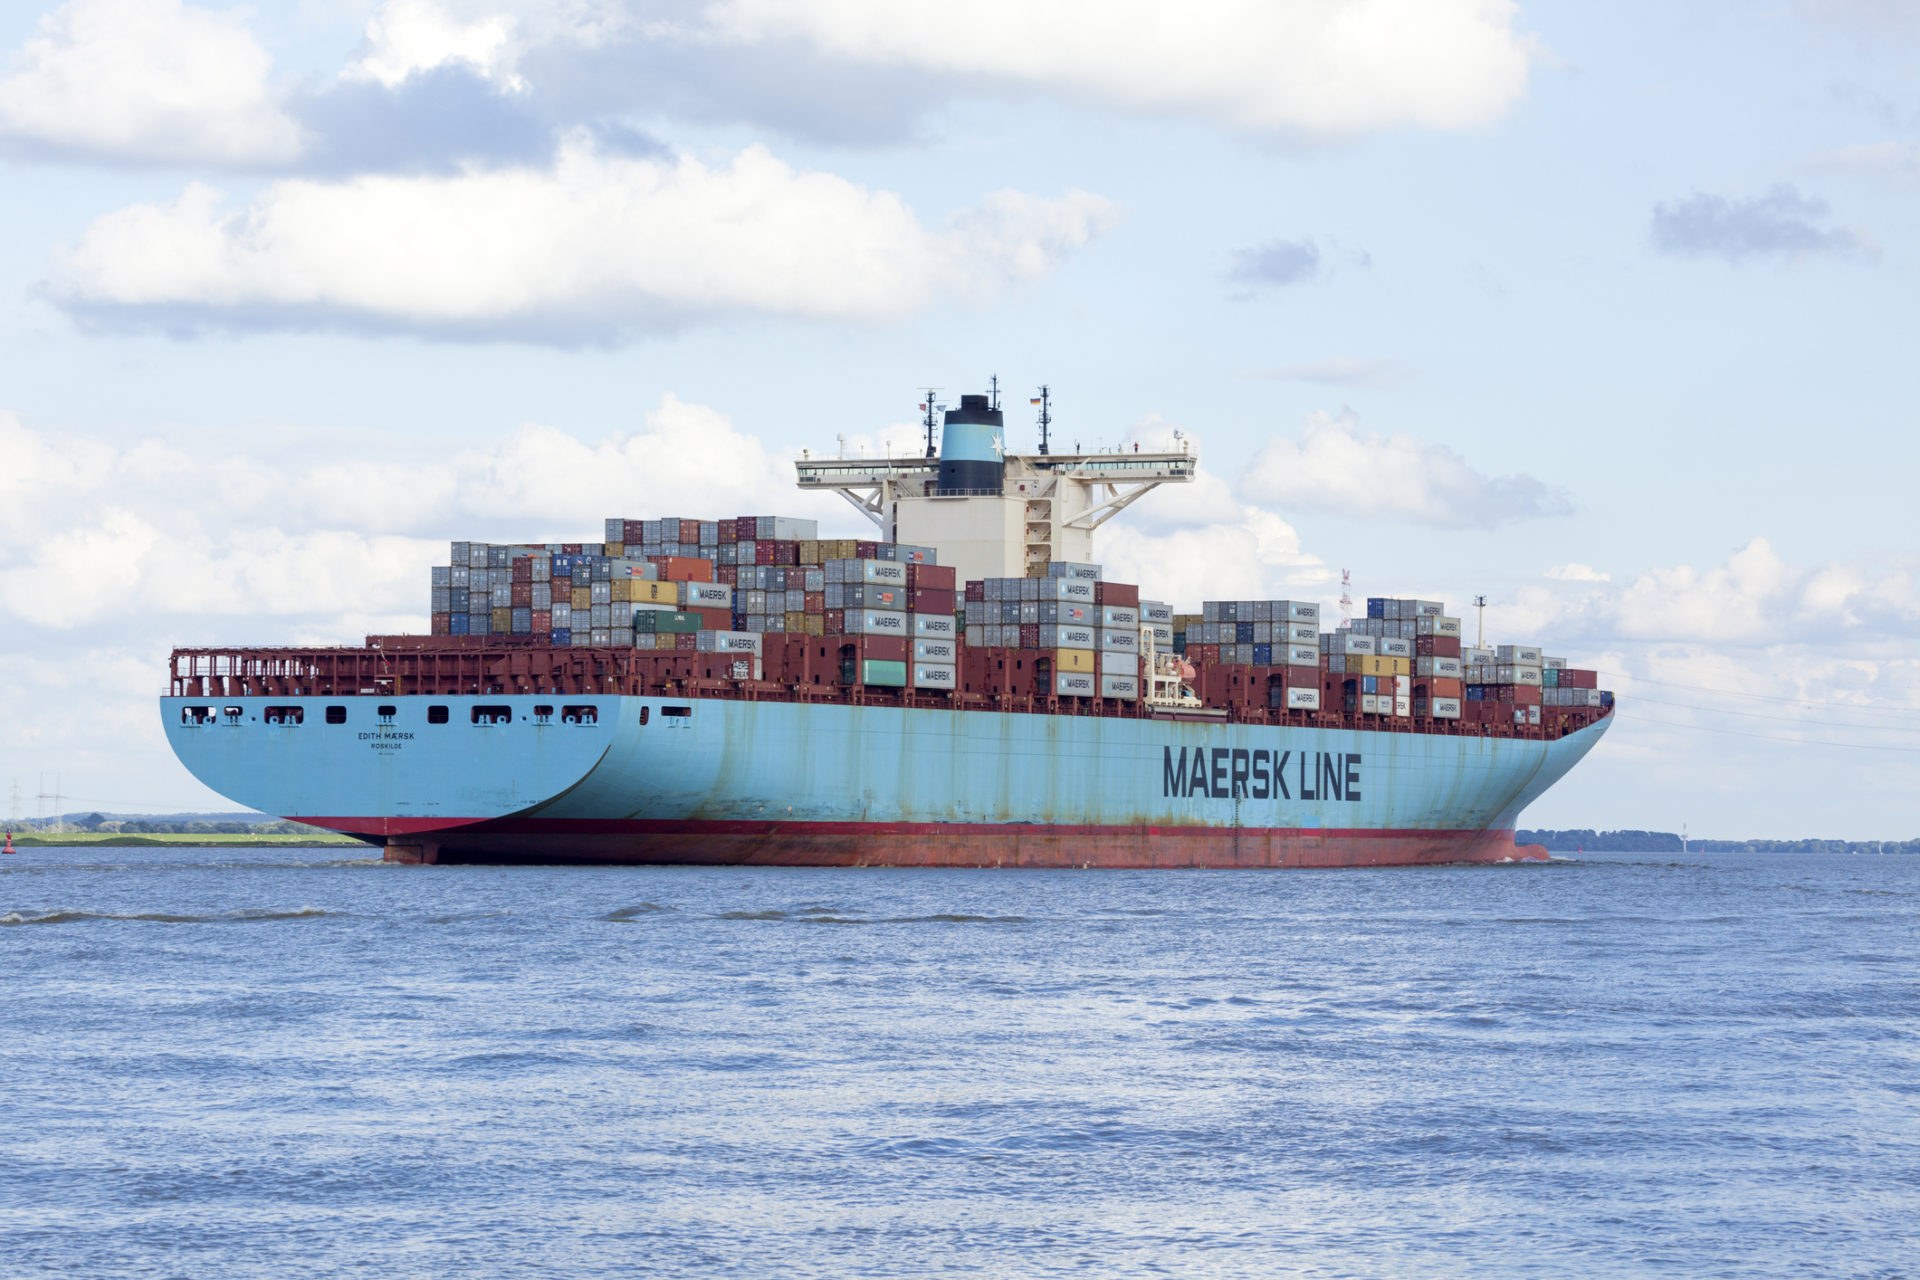 Stade, Germany - August 21, 2016: EDITH MAERSK, one of the world's largest cargo ships, operated by Danish shipping company Maersk Line, near Hamburg on Elbe river.